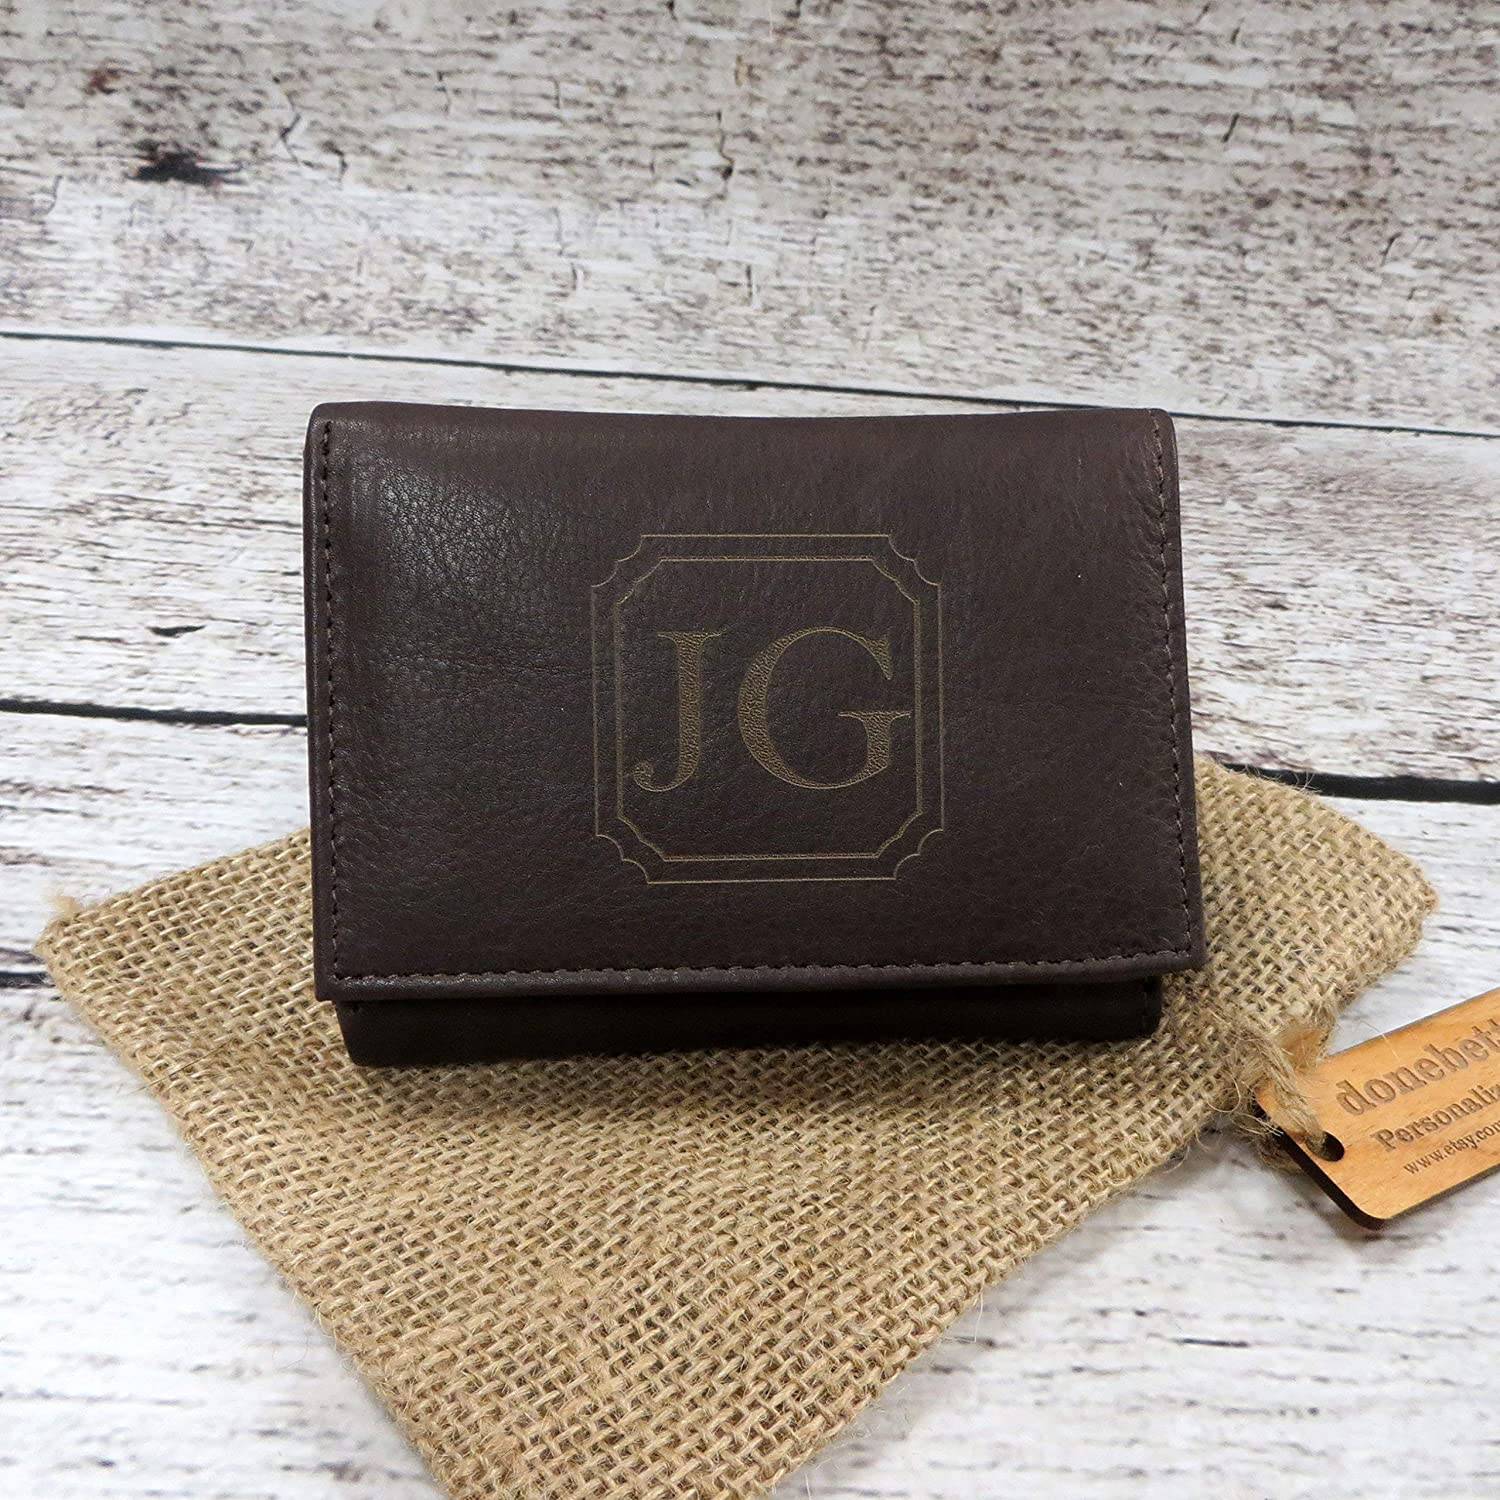 80th-birthday-gifts-wallet